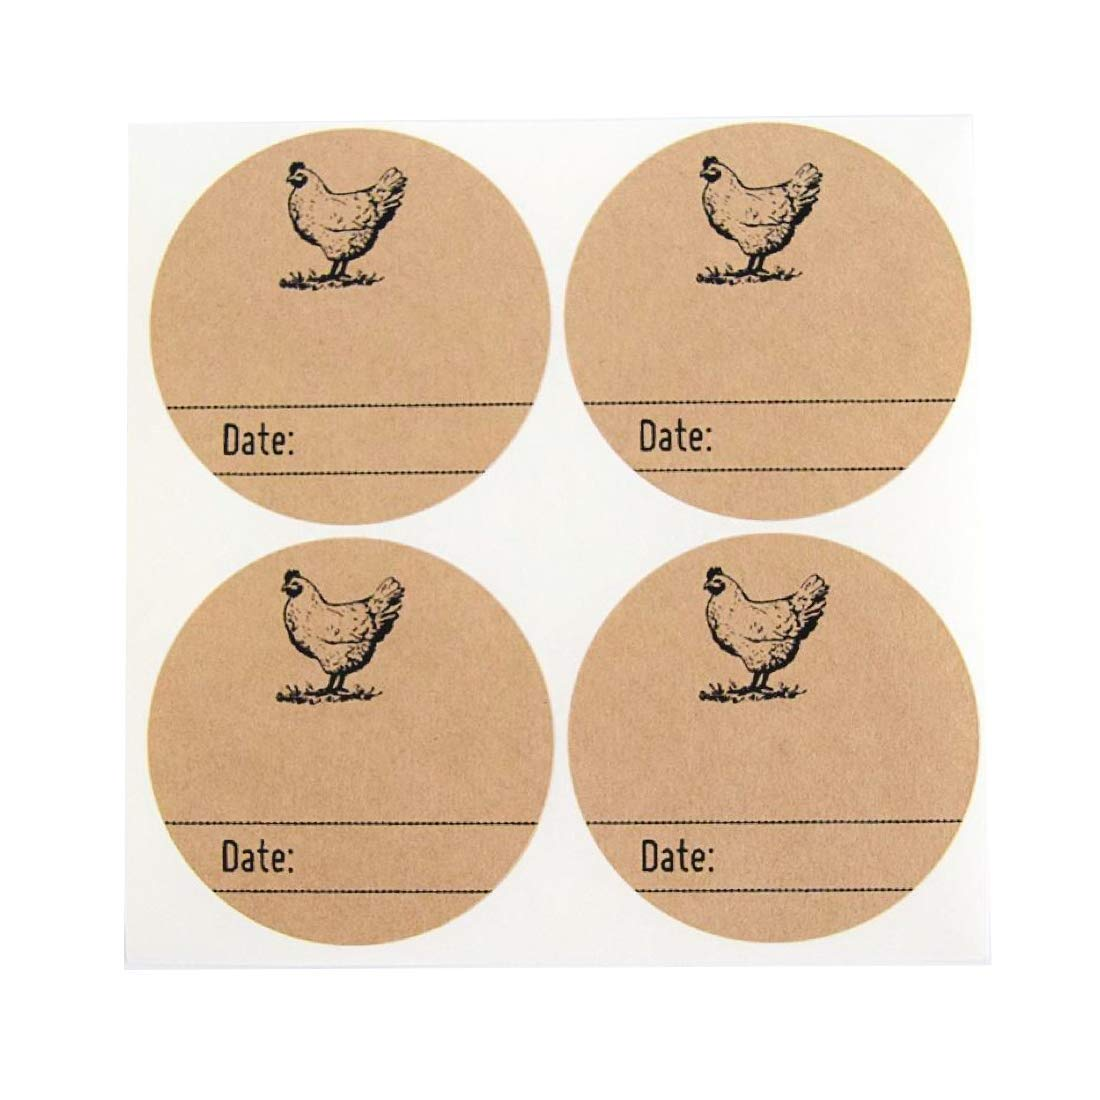 """Rustic Kraft Brown Kitchen Pantry Mason Jar Labels with Chicken Design by Once Upon Supplies, Homestead Canning Stickers, 2.5"""" Size for Wide Mouth Jars, 36 Pcs"""